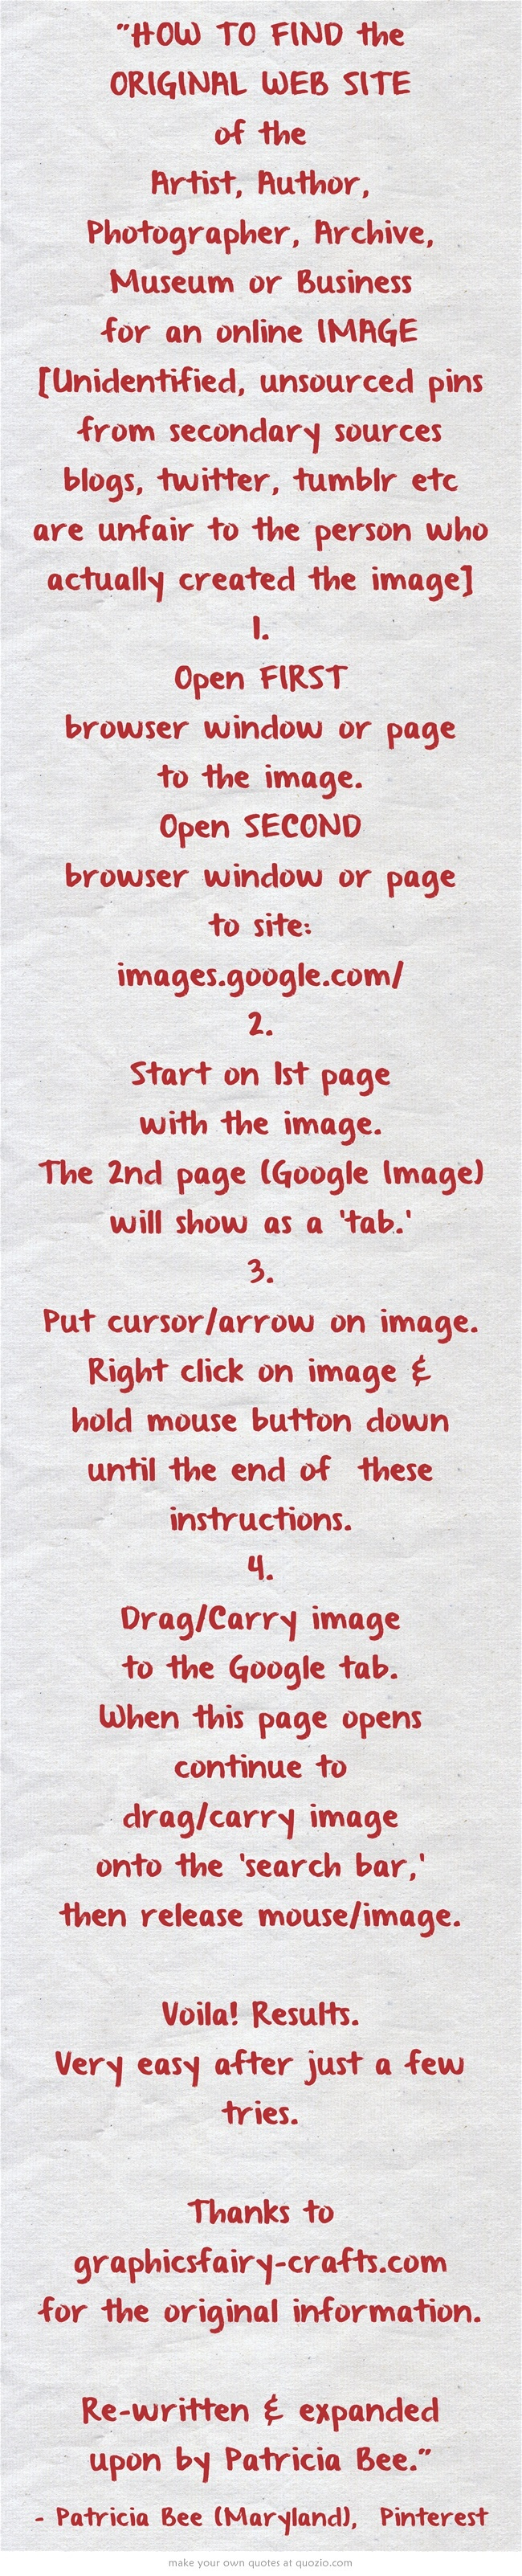 HOW TO FIND the ORIGINAL WEB SITE of the Artist, Author, Photographer, Archive, Museum or Business for an online IMAGE. ... Graphics Fairy:  http://www.graphicsfairy-crafts.com/2012/03/how-to-find-original-source-of-image-on.html ... Google Image Search Page: http://images.google.com/ Check the link before you repin. Edit pins so to link to the ORIGINAL online website -where it was FIRST posted!